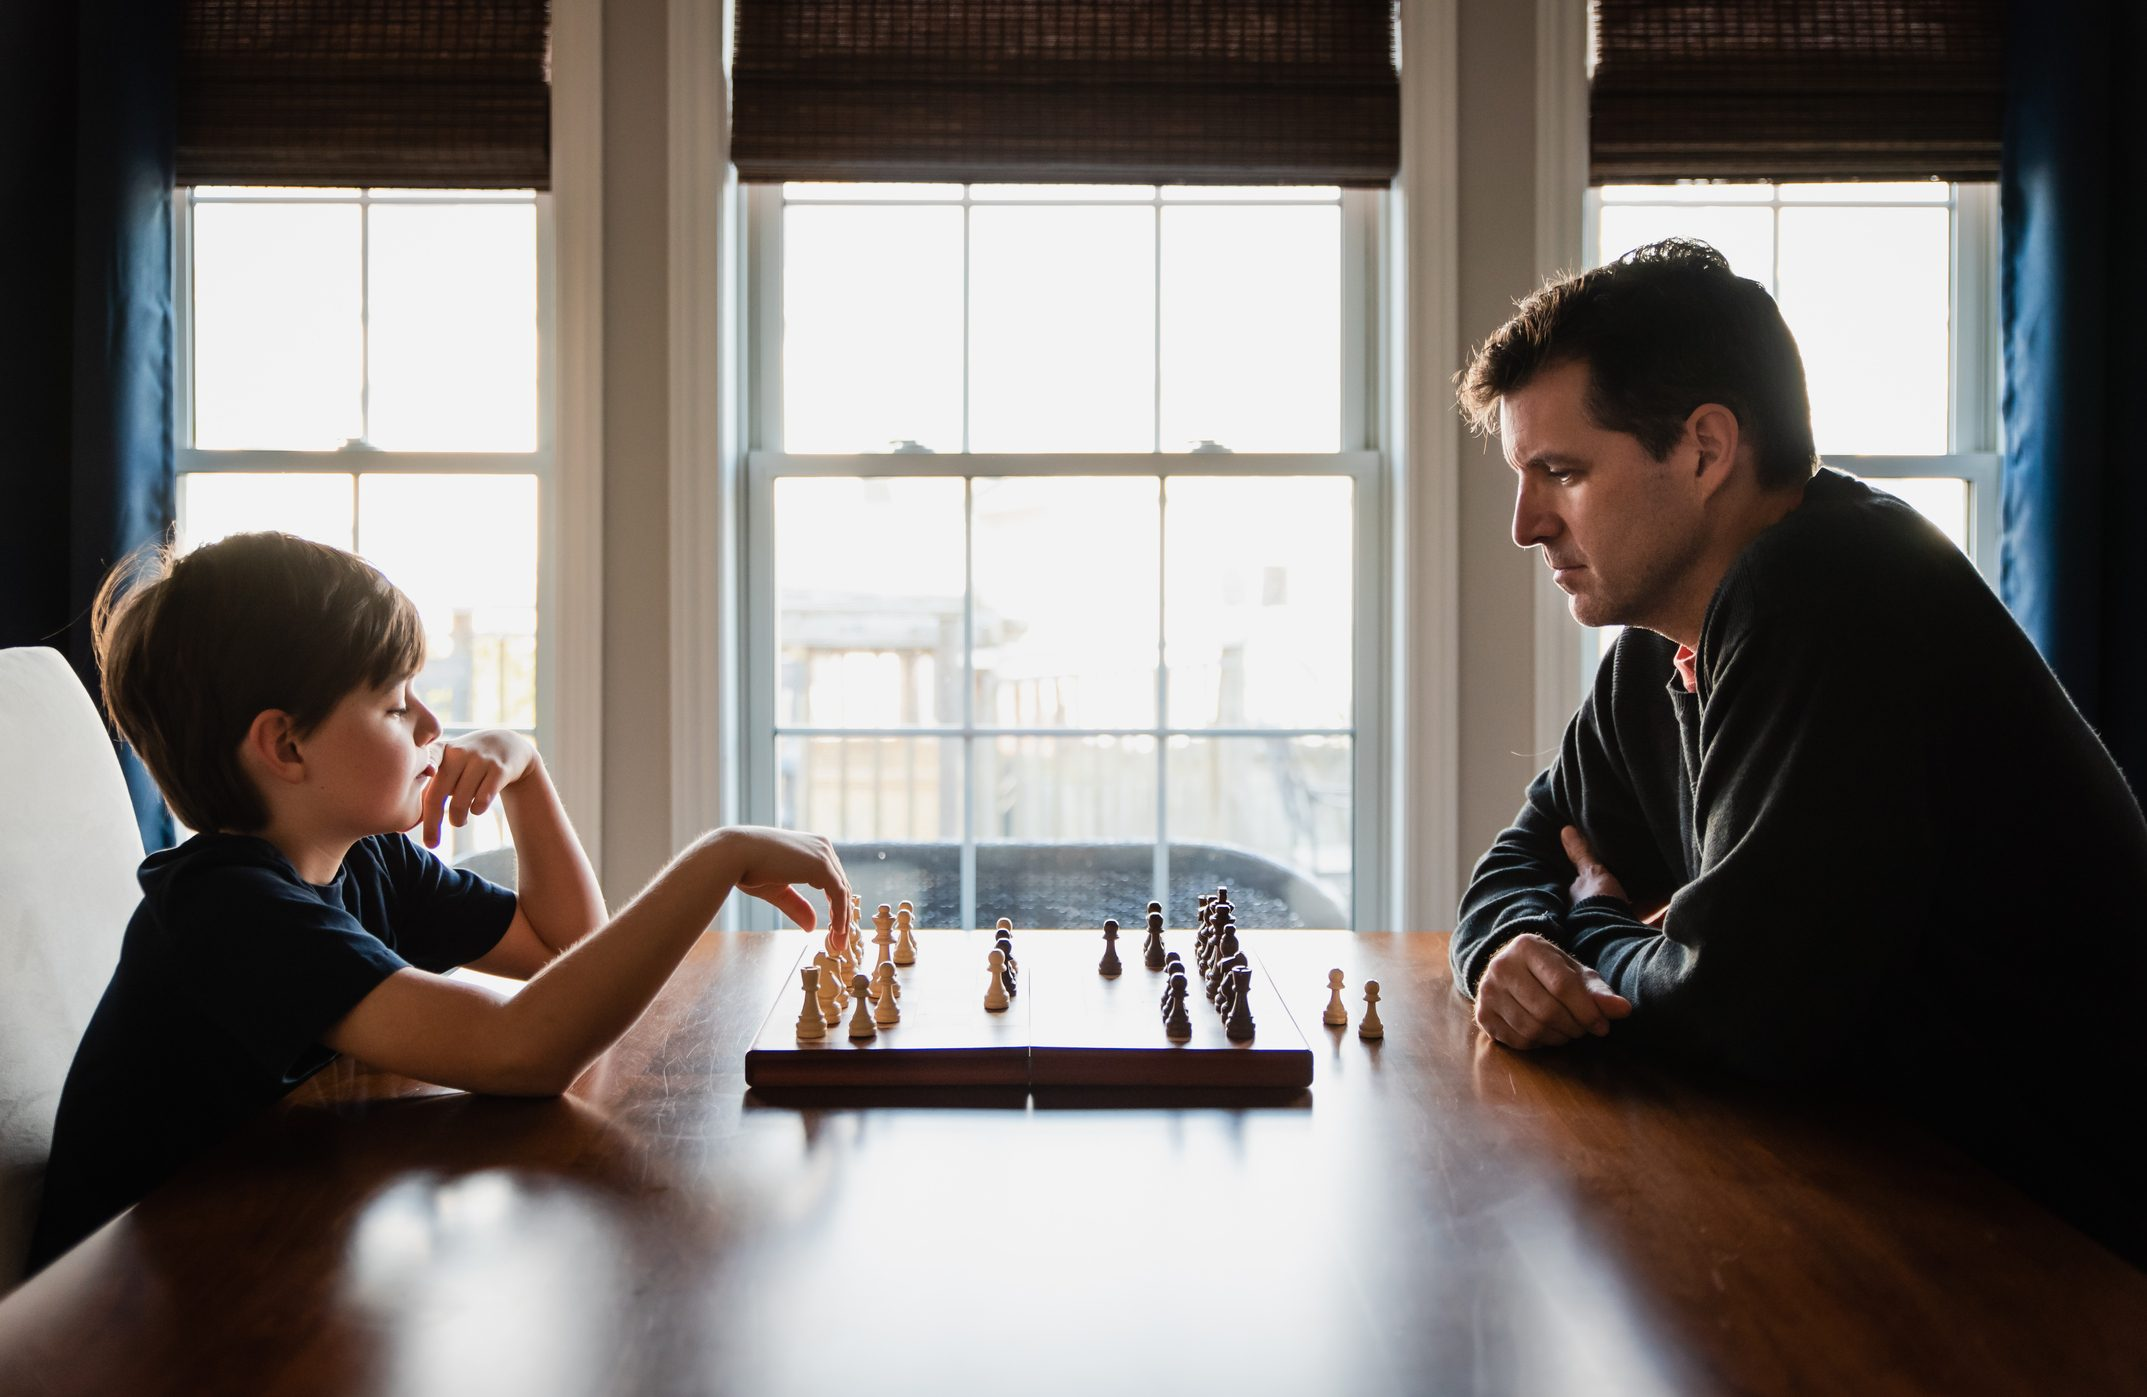 Father and son sitting at a table indoors playing a game of chess.